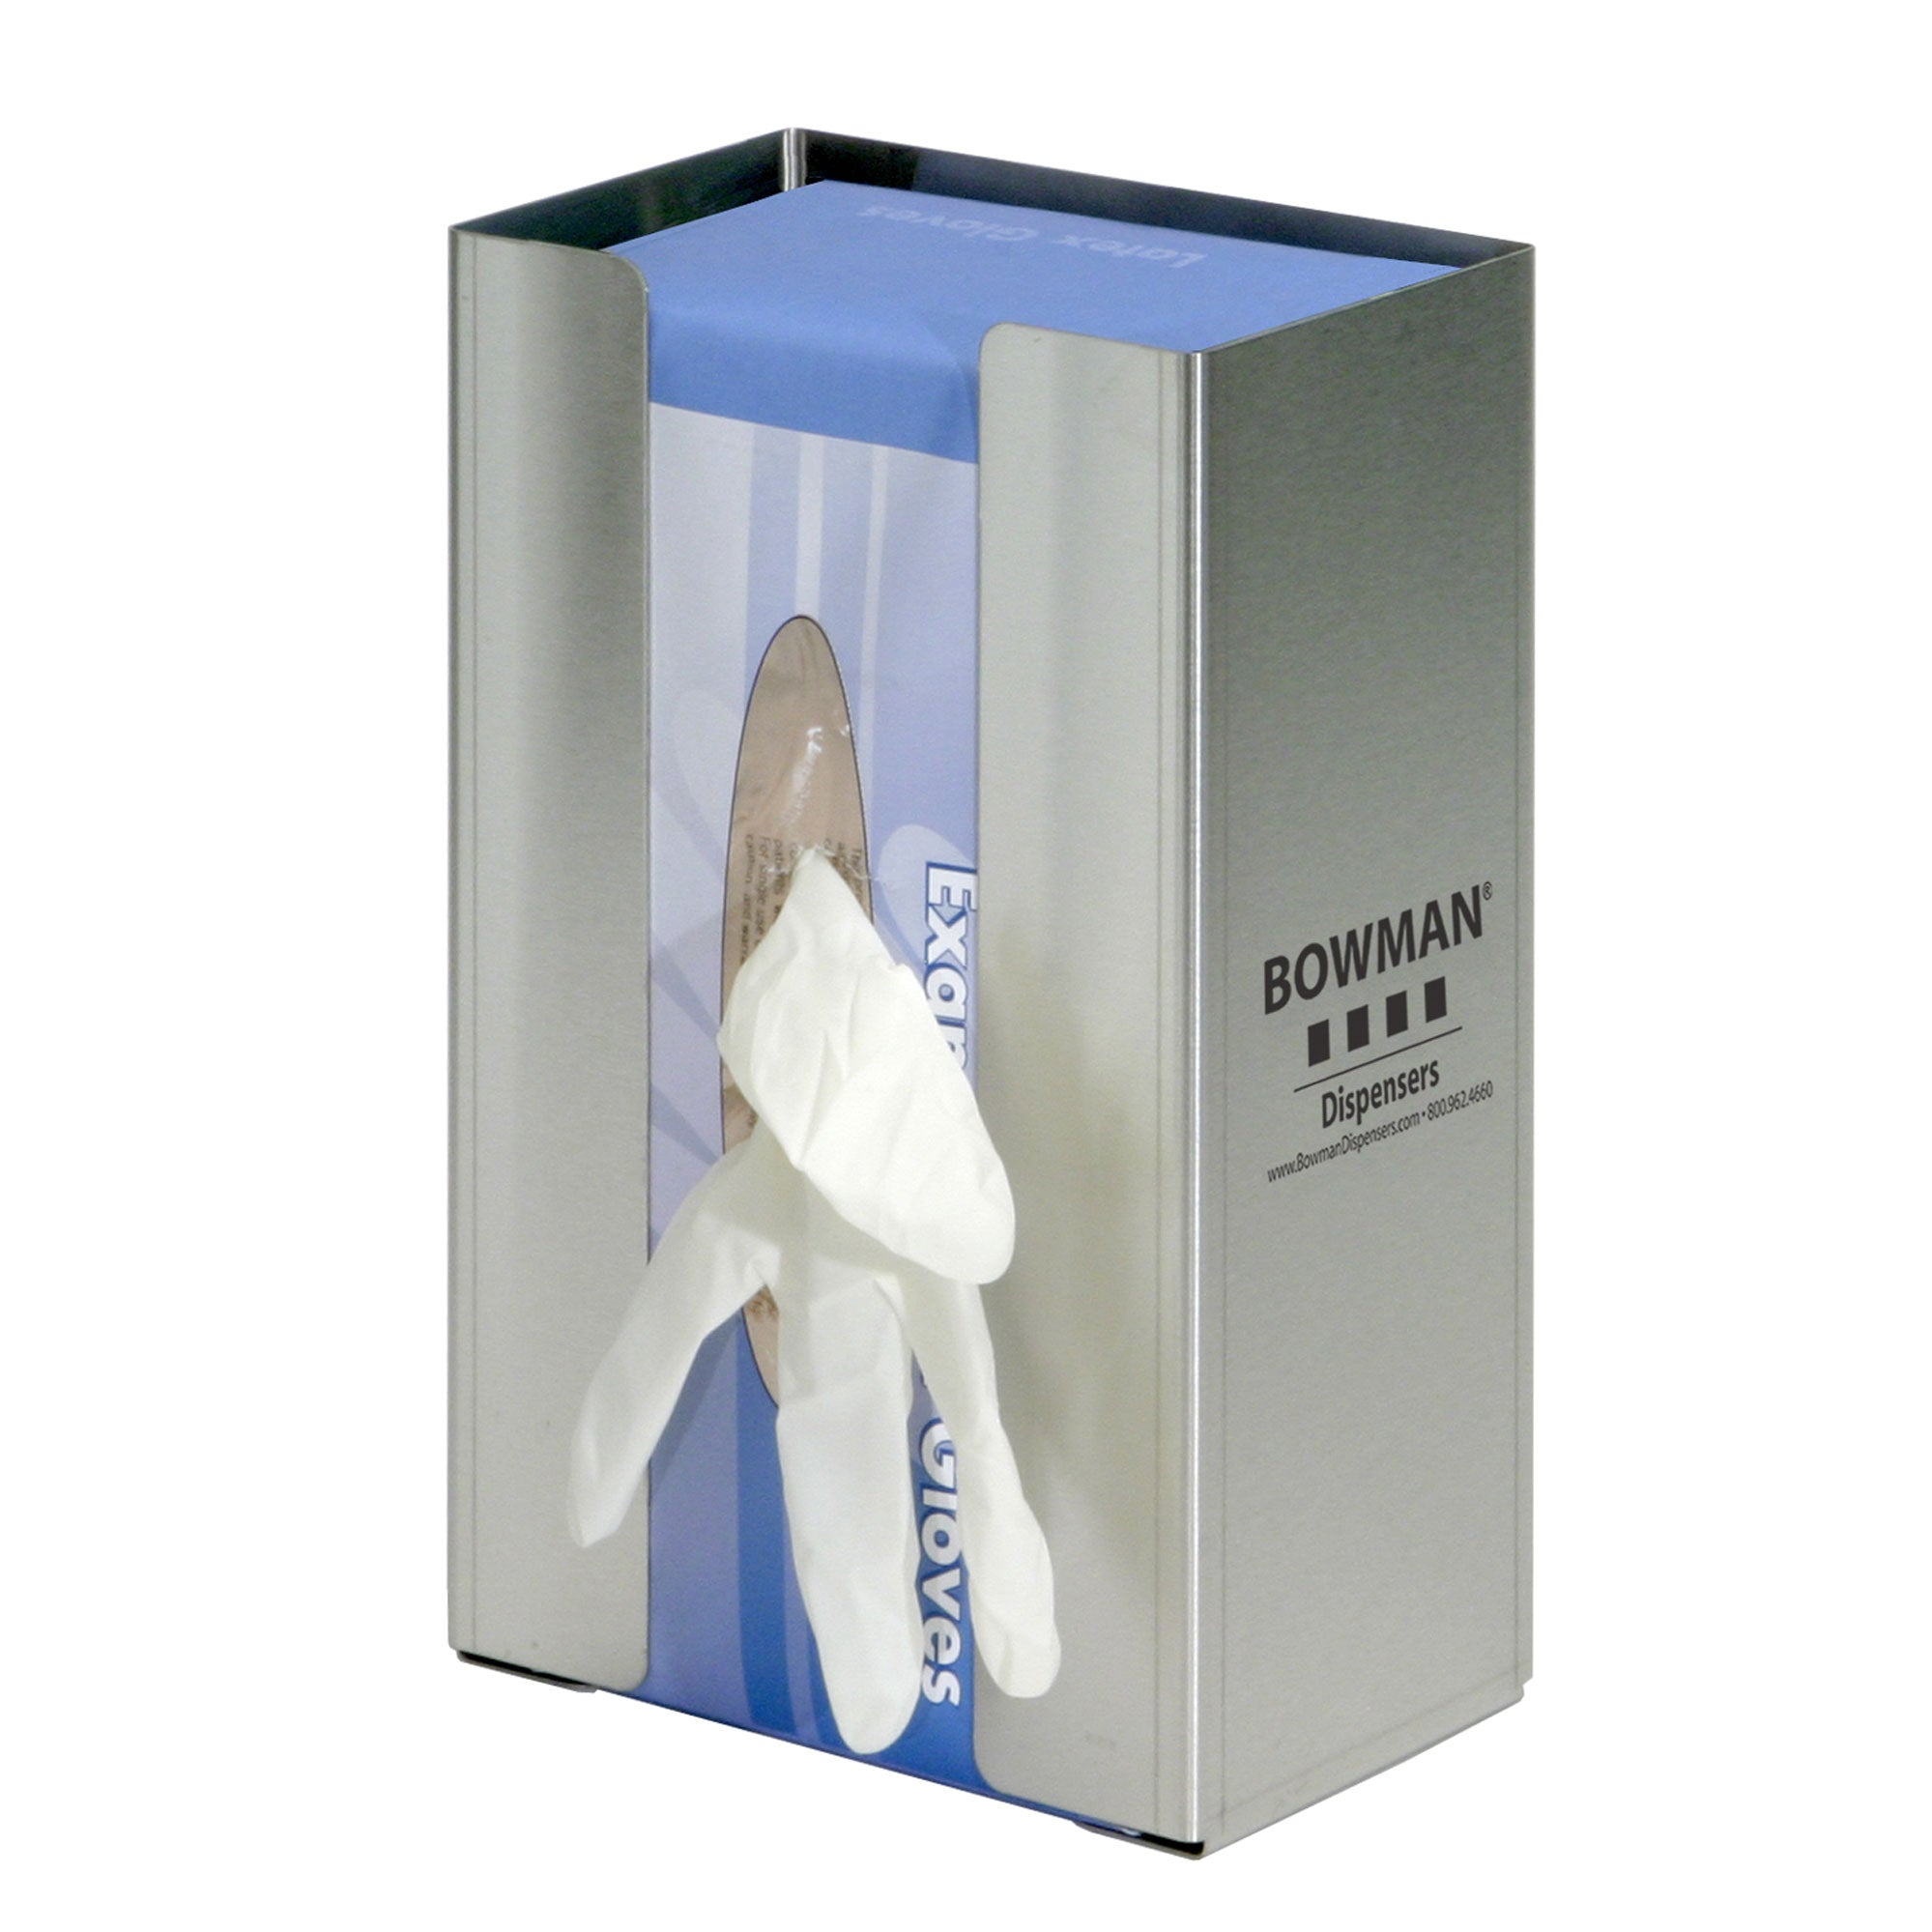 Bowman Stainless Steel Large Single Glove Box Dispenser